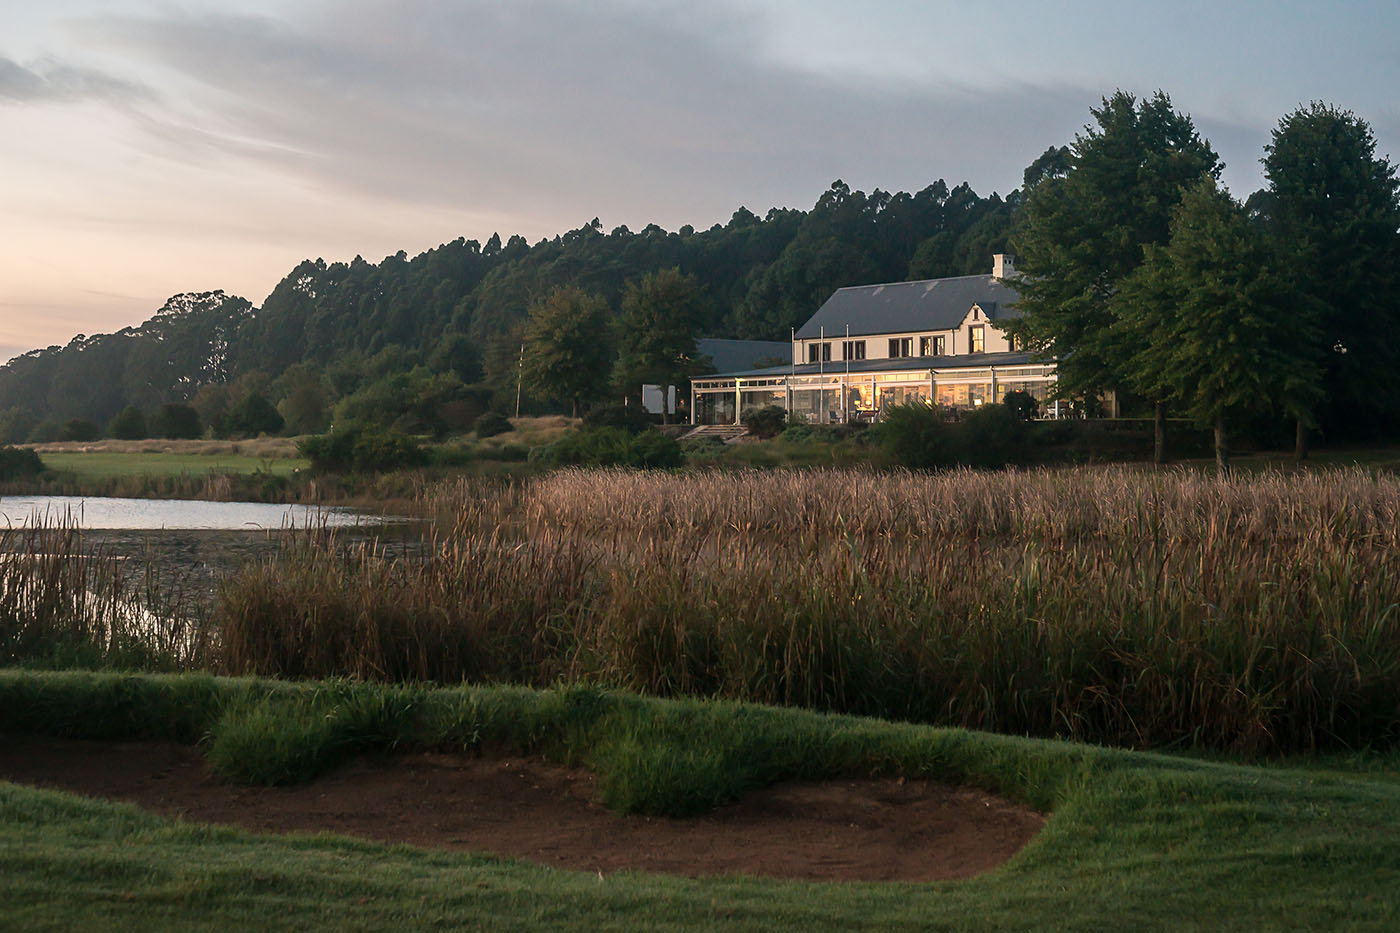 golf-gallery-gowrie-farm-kzn-golf-course-midlands-meander